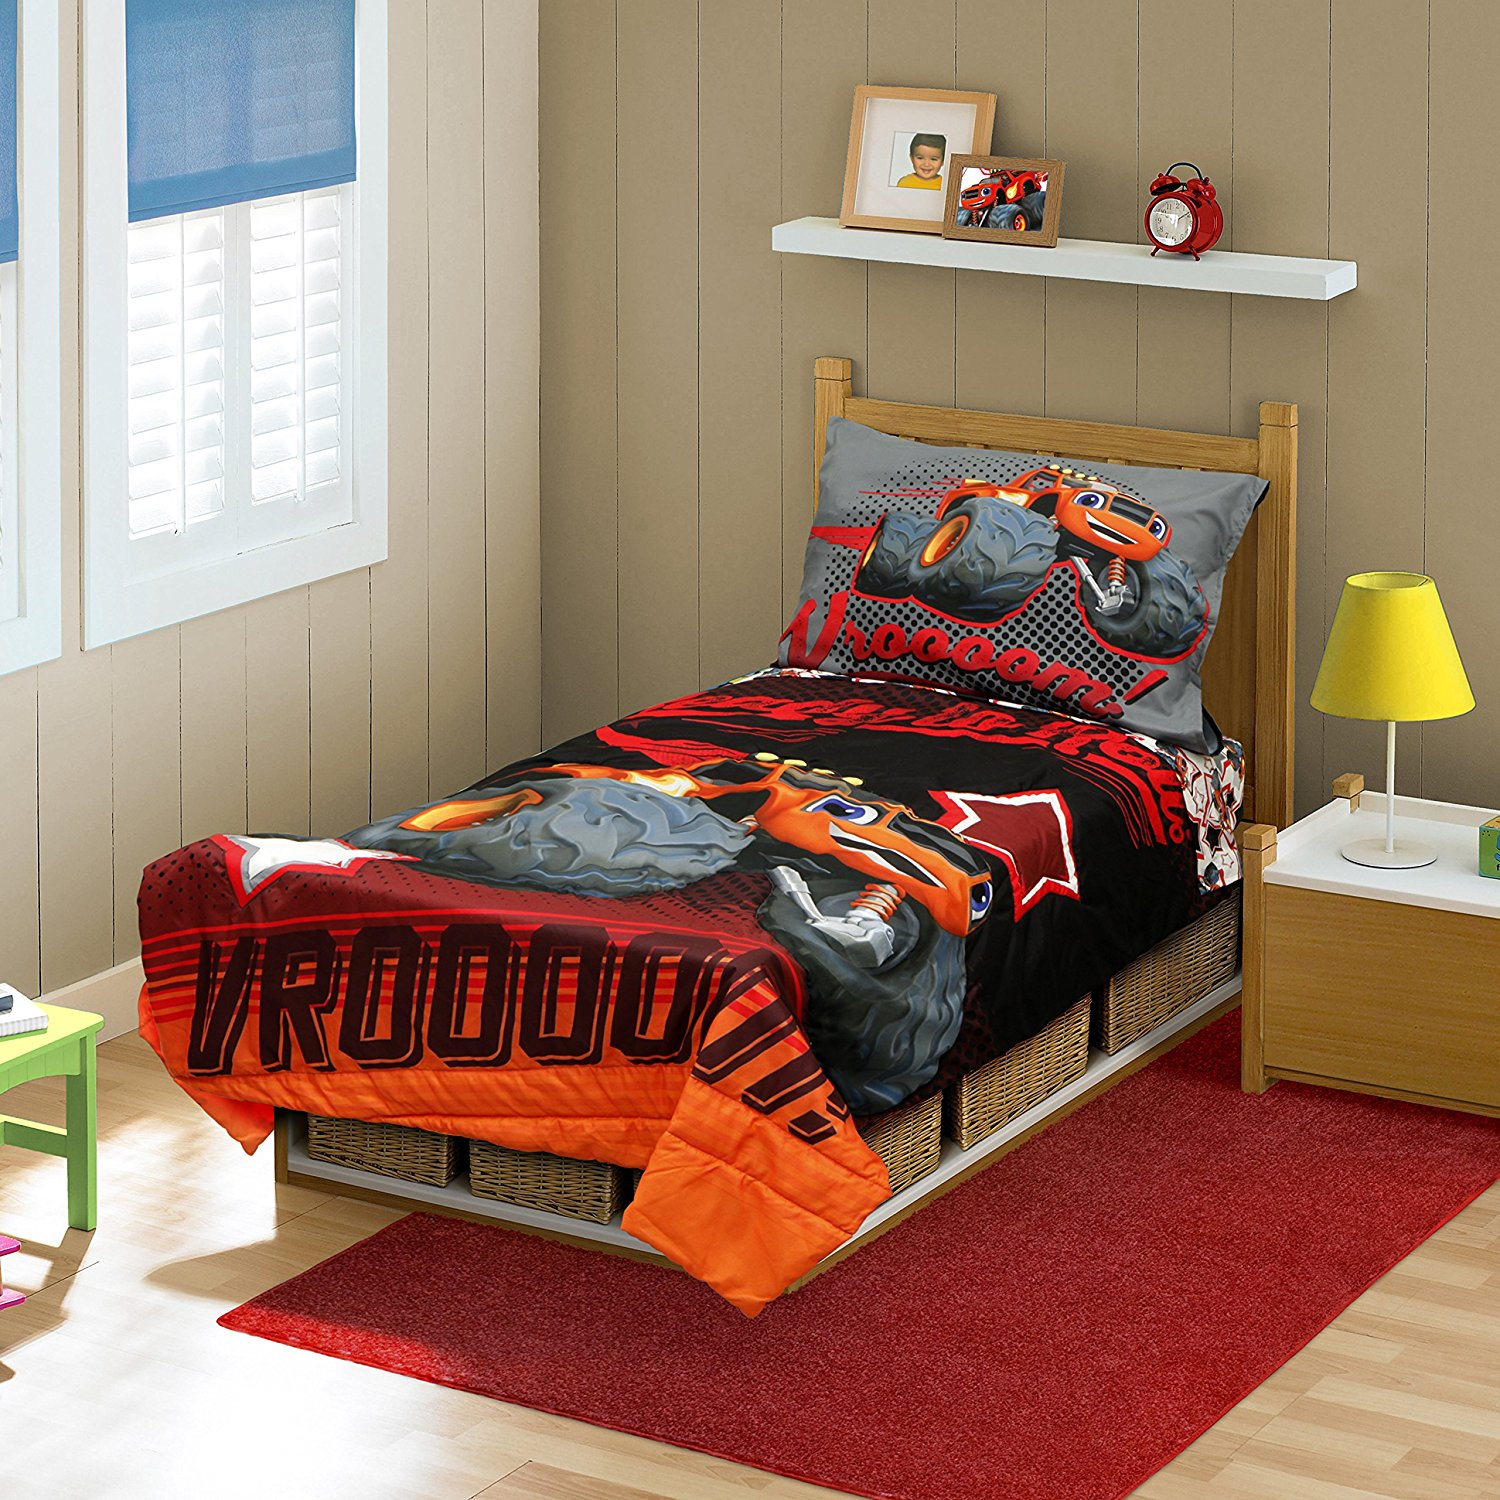 blaze-the-monster-machine-ready-to-roll-toddler-bed-set-red-by-blaze-the-monster-machine